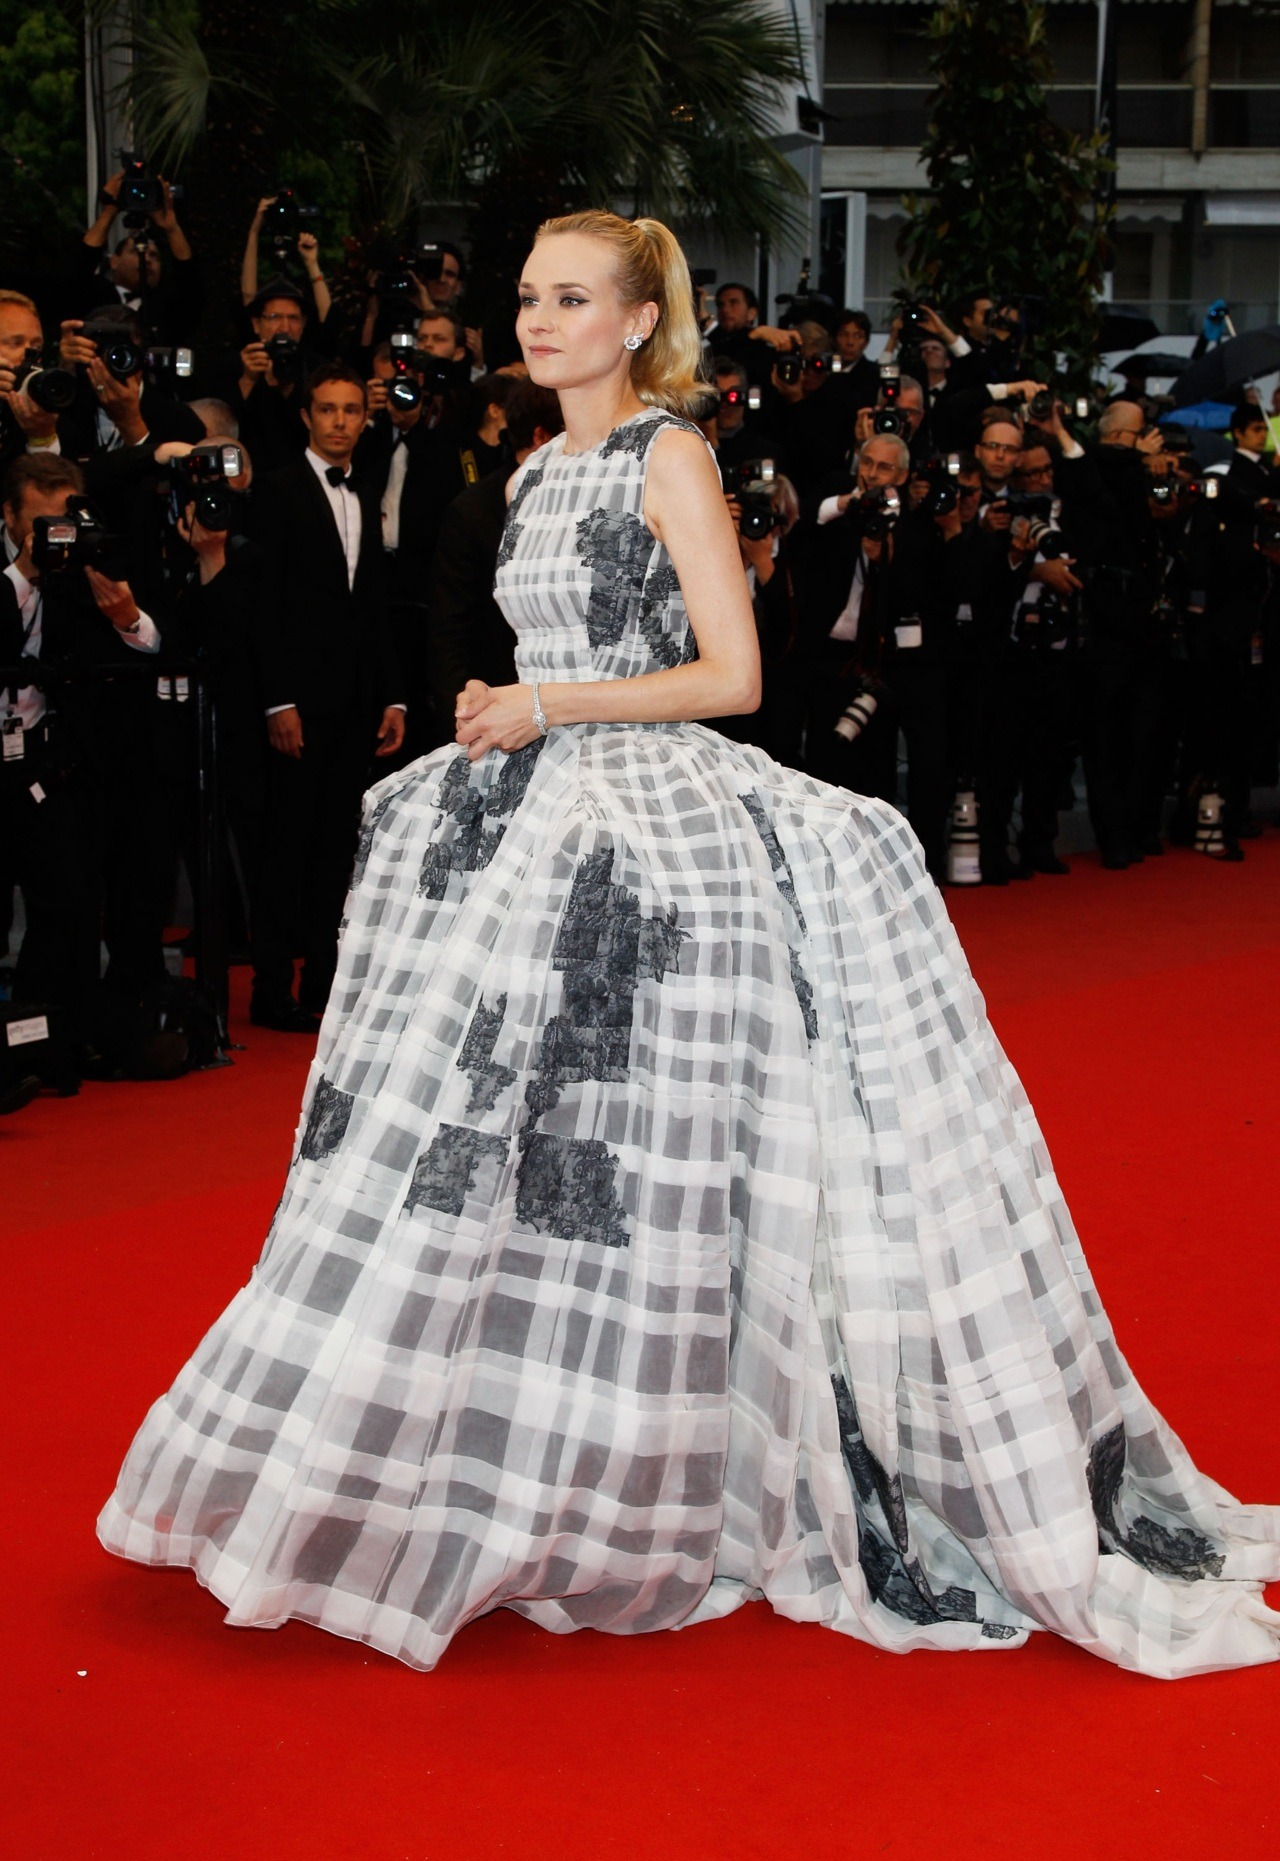 Diane Kruger (wearing Dior Couture Spring 2012) at the premiere of Therese Desqueyroux and the closing ceremonies of the Cannes Film Festival, May 27th Girl, you are officially the QUEEN of this Cannes.